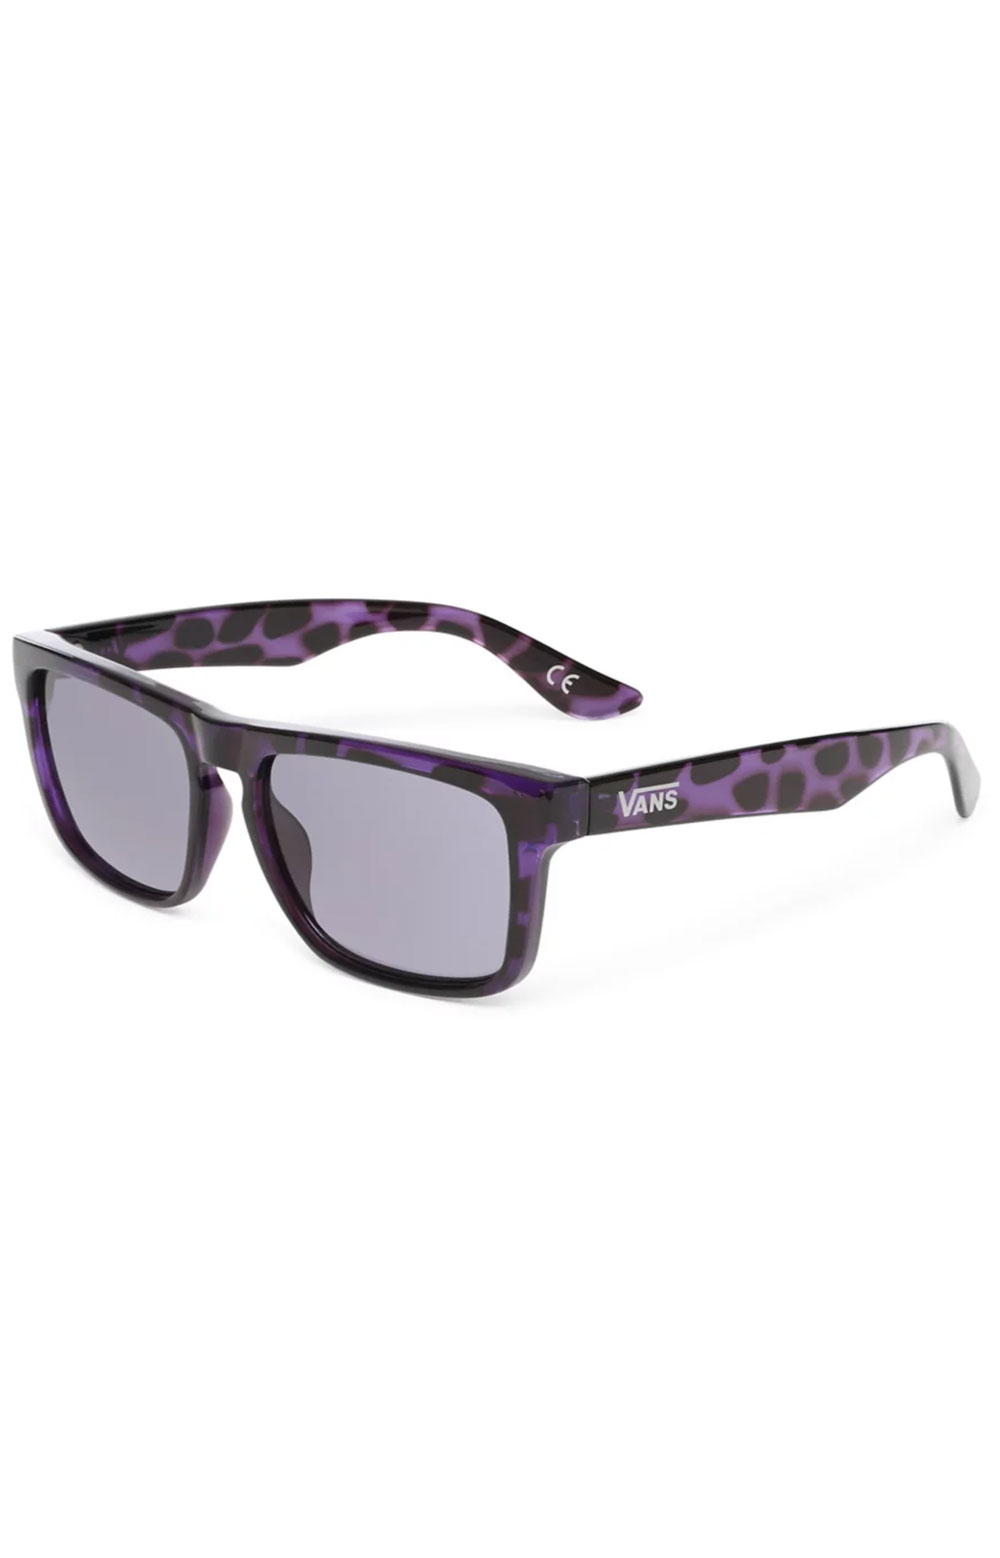 Squared Off Sunglasses - Port Royale